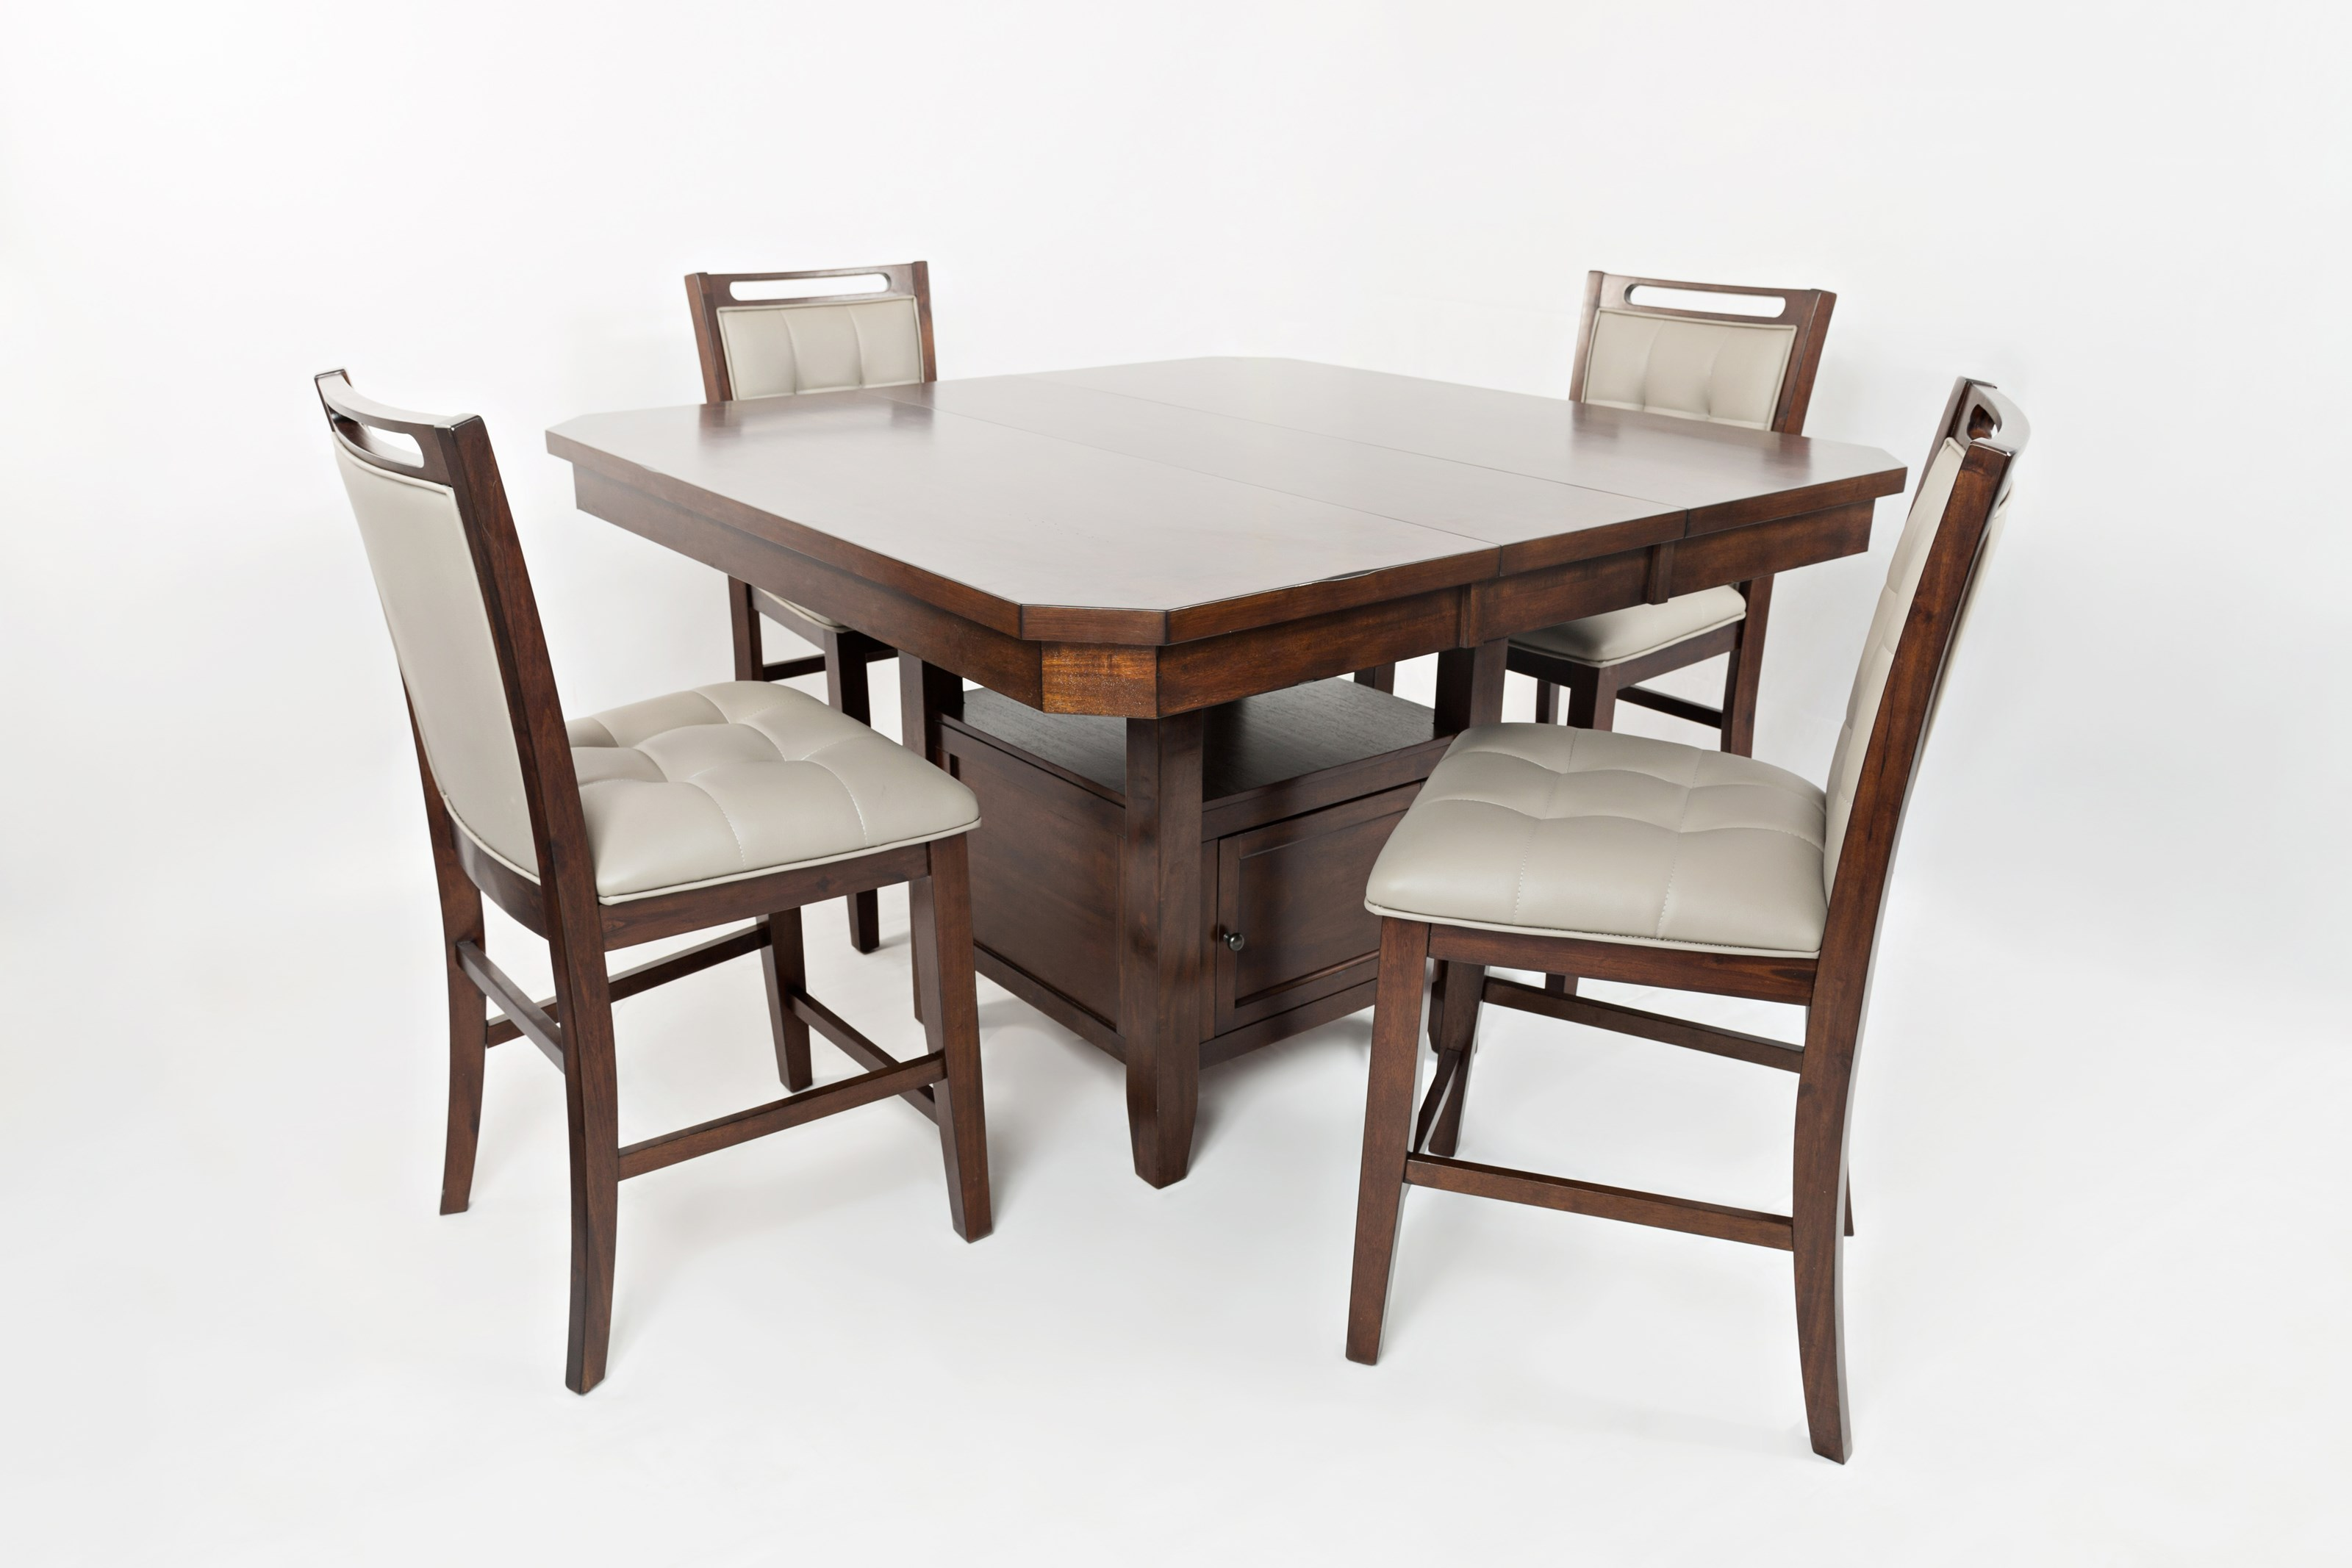 jofran manchester counter height dining set 4 people h l stephens pub table and stool sets. Black Bedroom Furniture Sets. Home Design Ideas